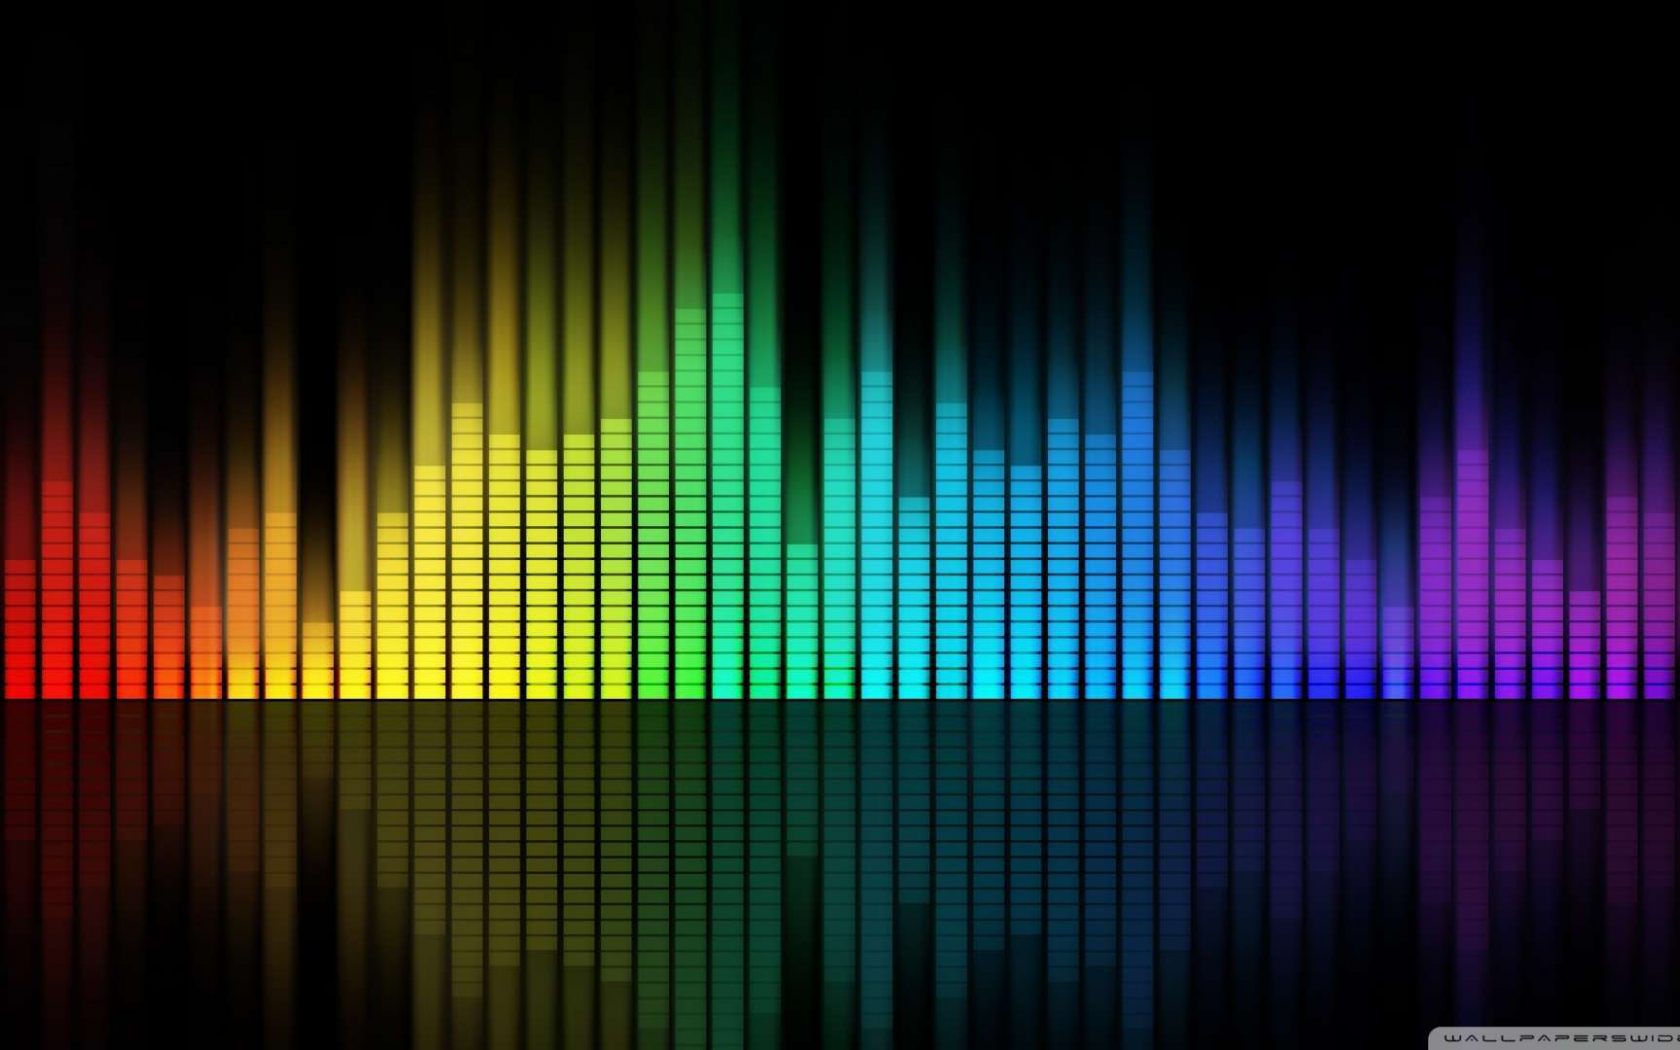 Download Wallpaper Music Equalizer Wallpaper 1080p Hd Upload At